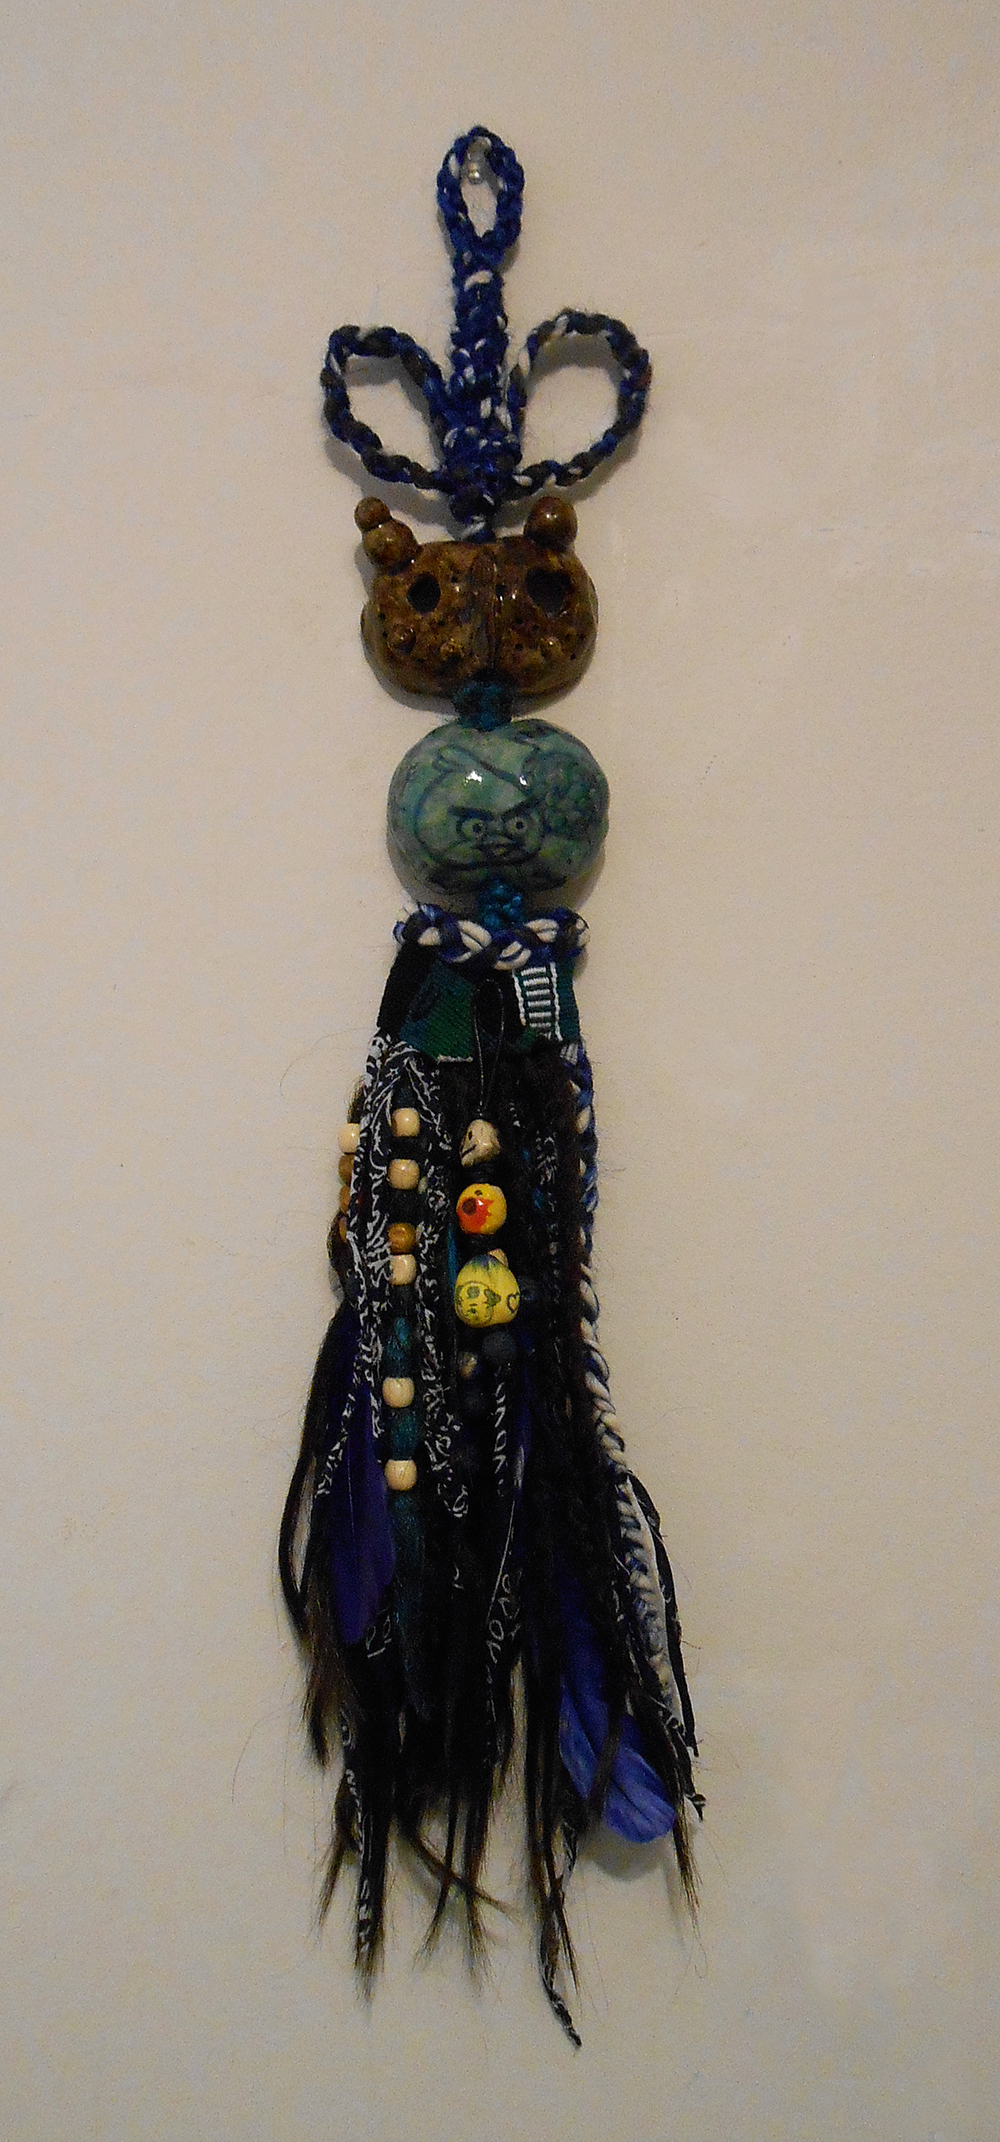 "Jiha Moon  Blue Bird  Ceramic, hand-knotted synthetic hair, feathers, fabric, wooden beads, found objects 28"" x 5"" x 2.5"" 2014"